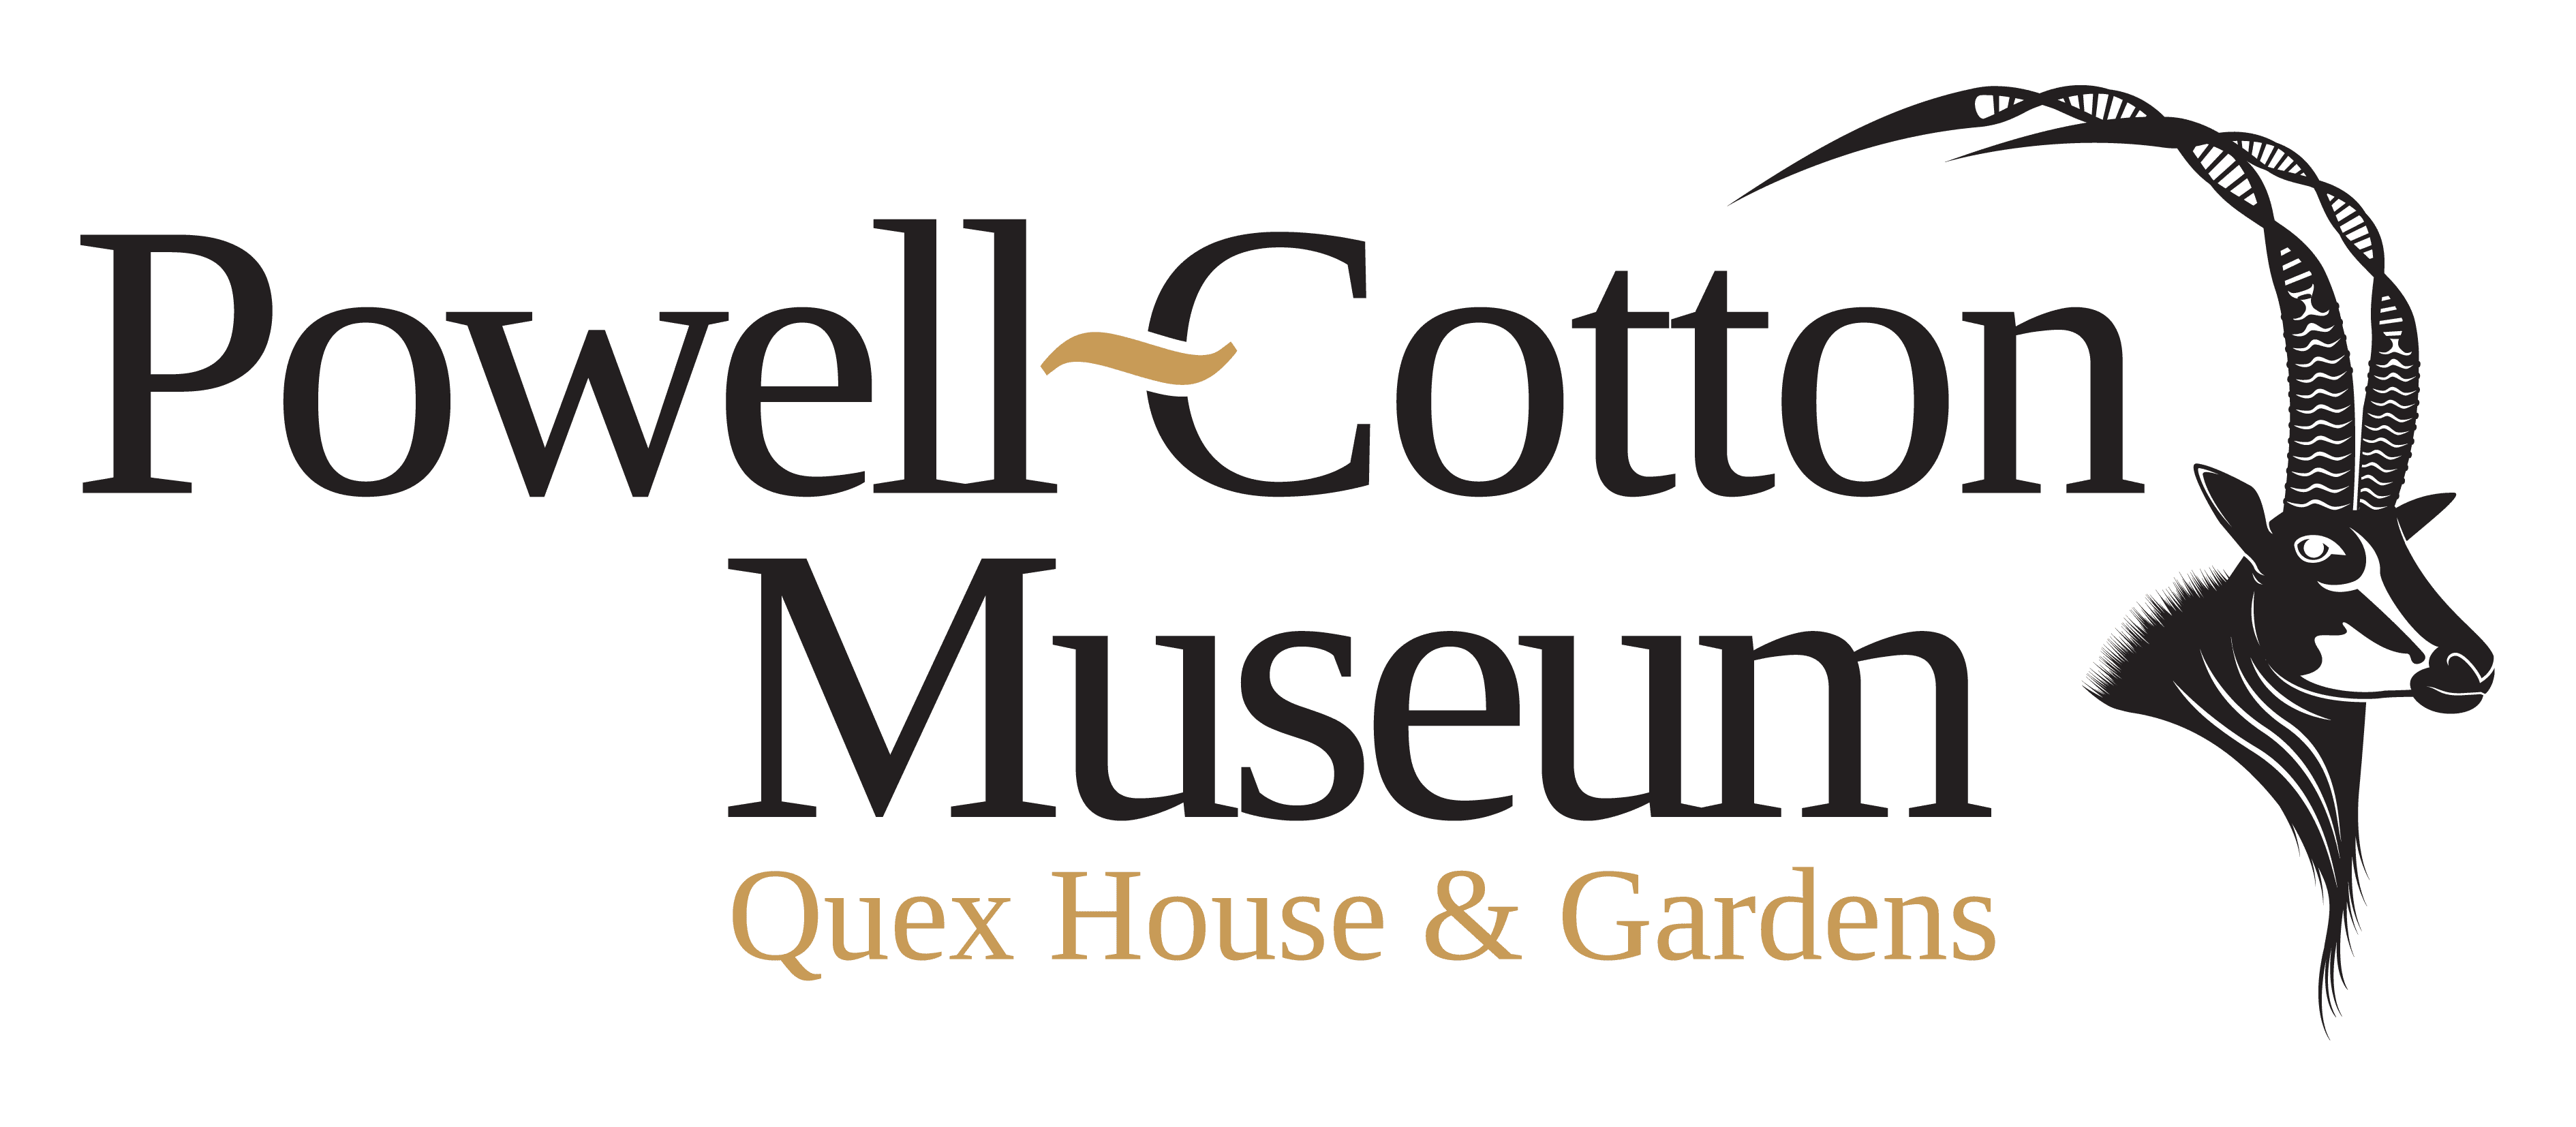 Powell Cotton Museum